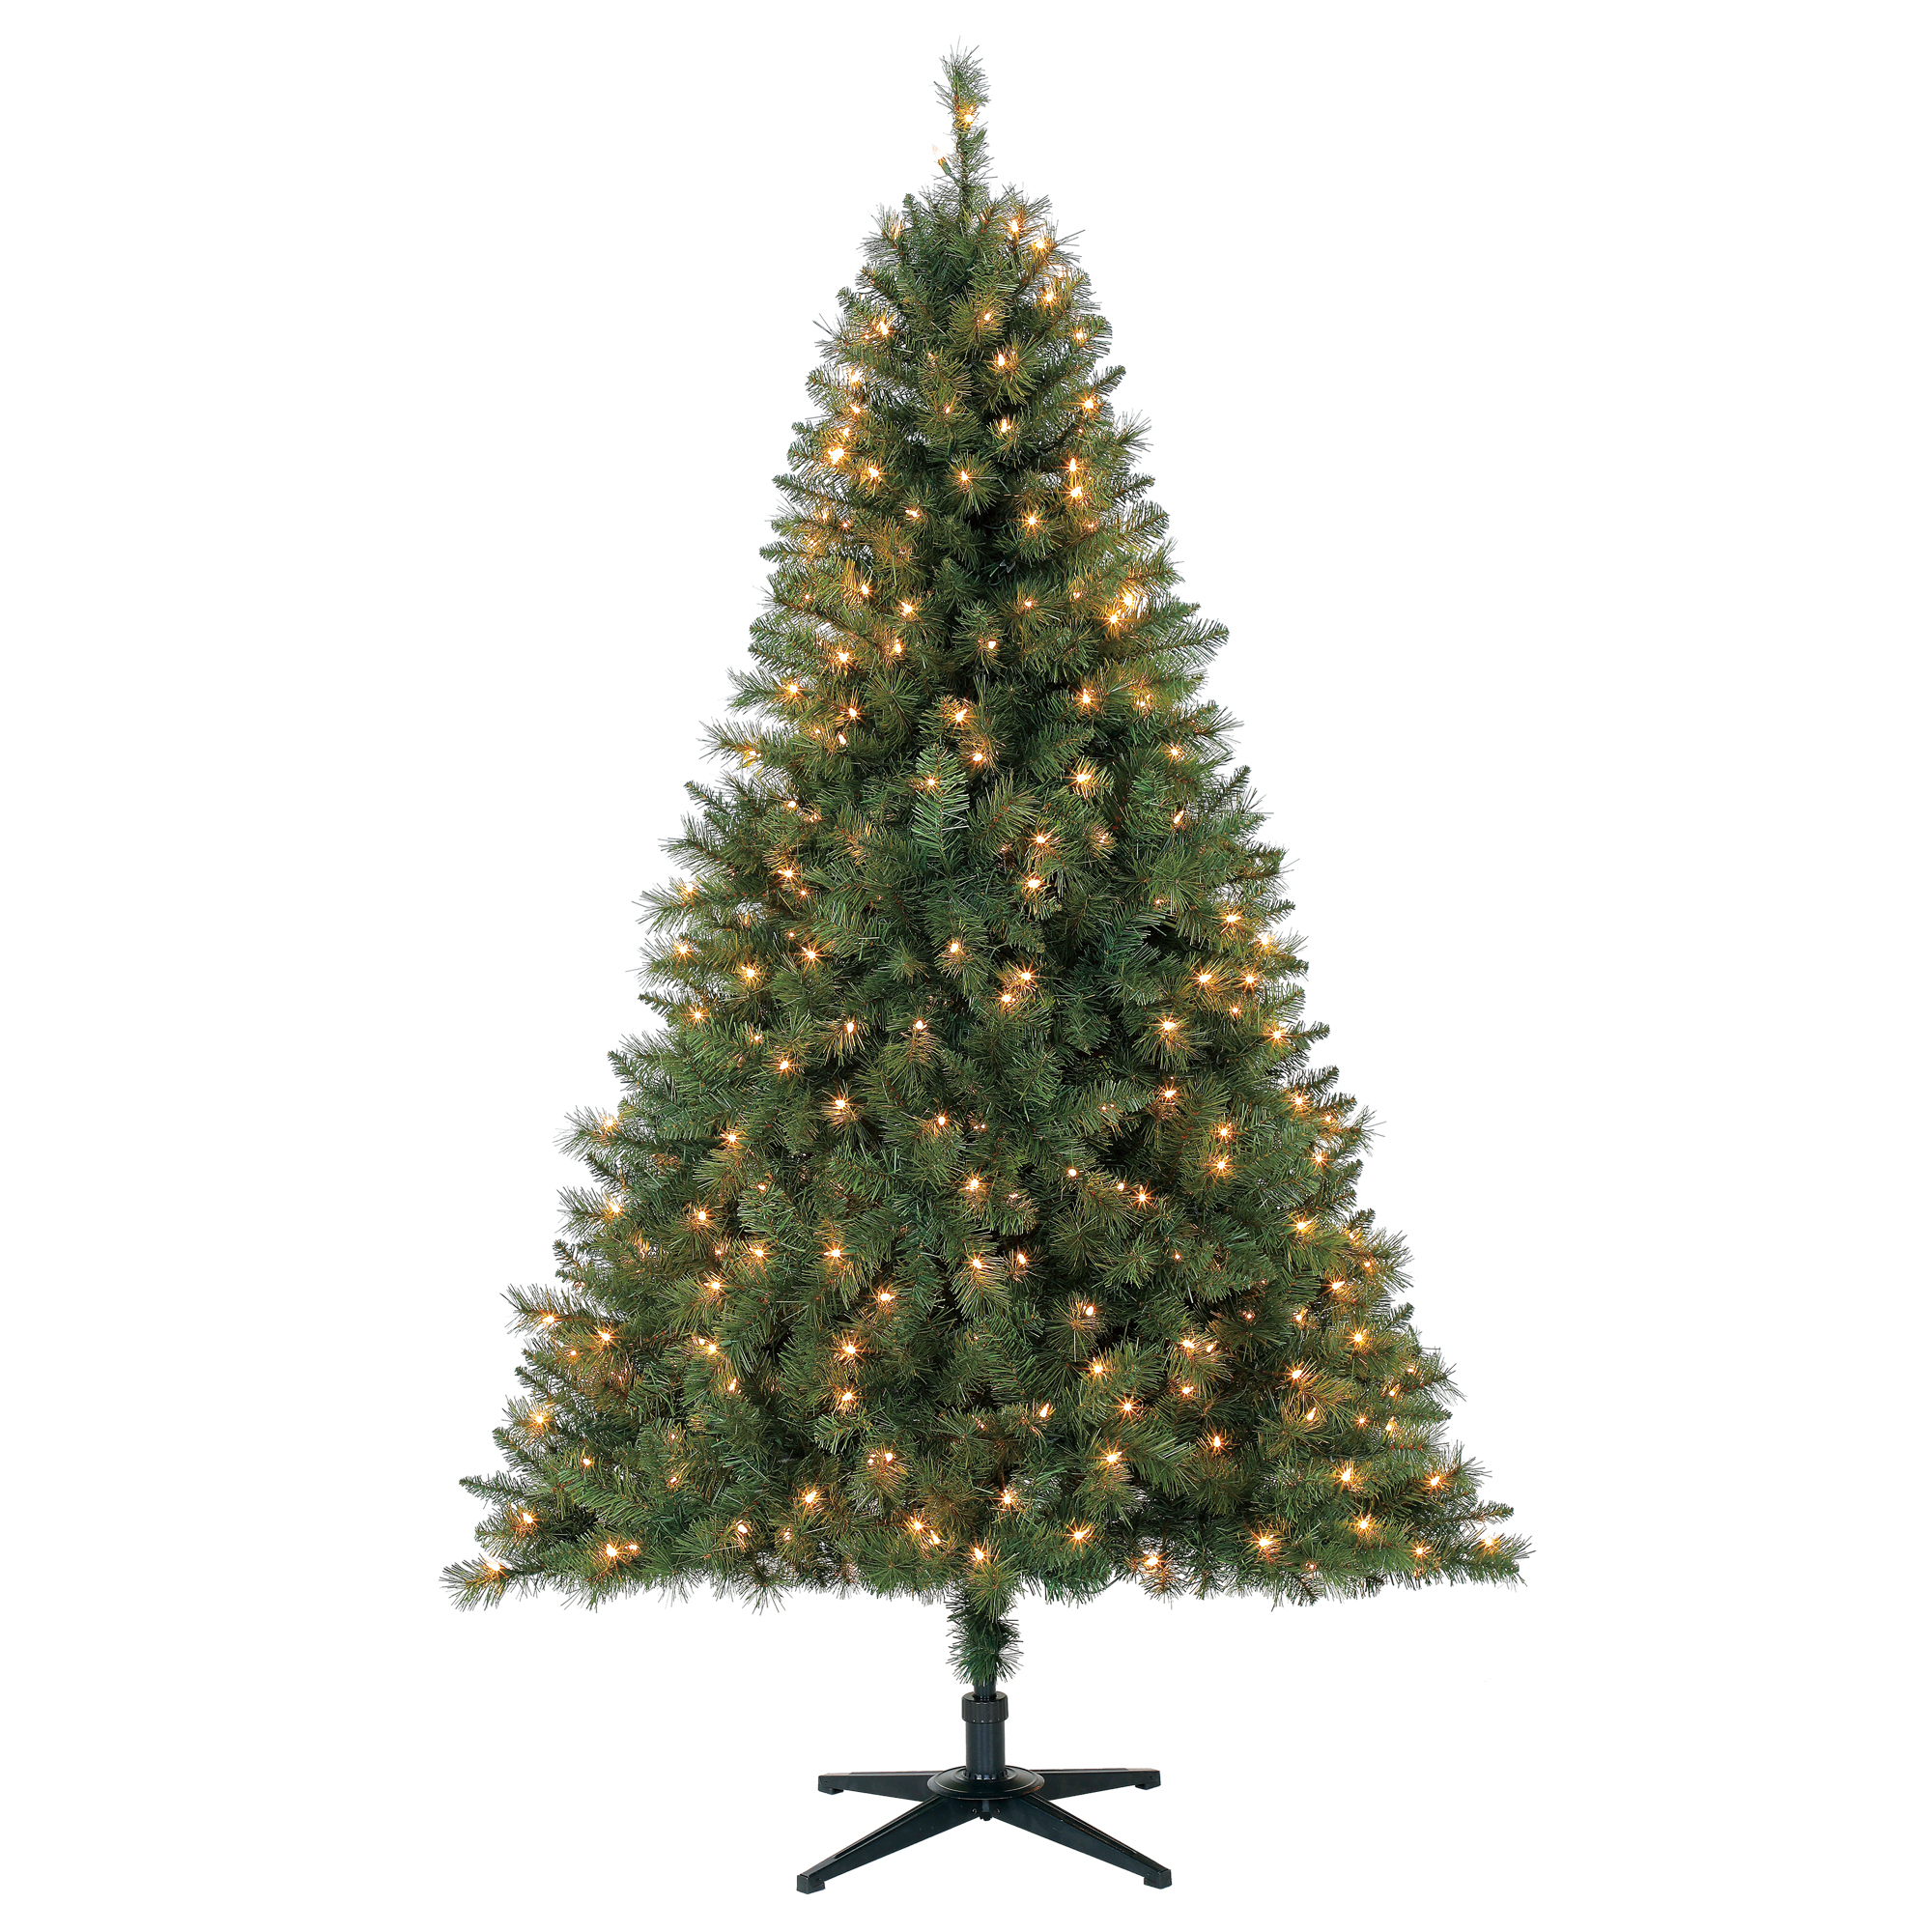 Holiday Time 6.5ft Pre-Lit Windham Pine Artificial Christmas Tree with 350 Clear Lights - Green